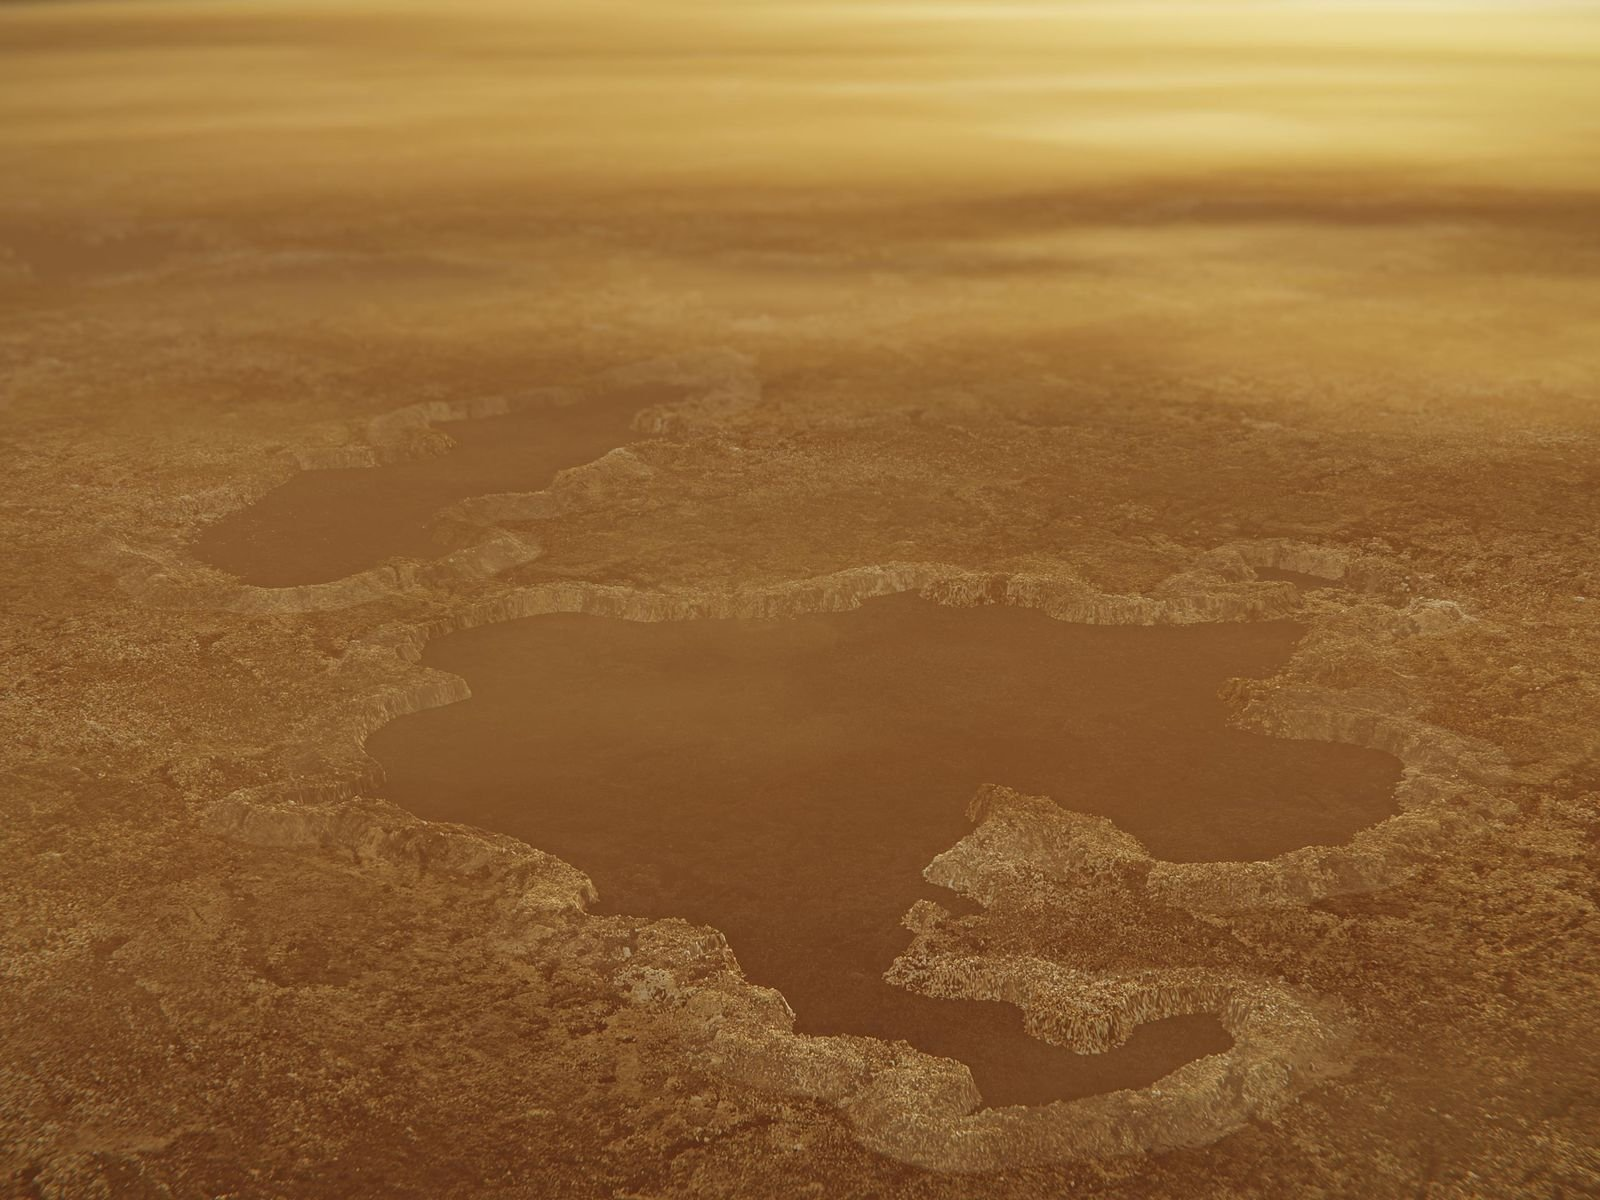 Lakes on Saturn's moon may be explosion craters